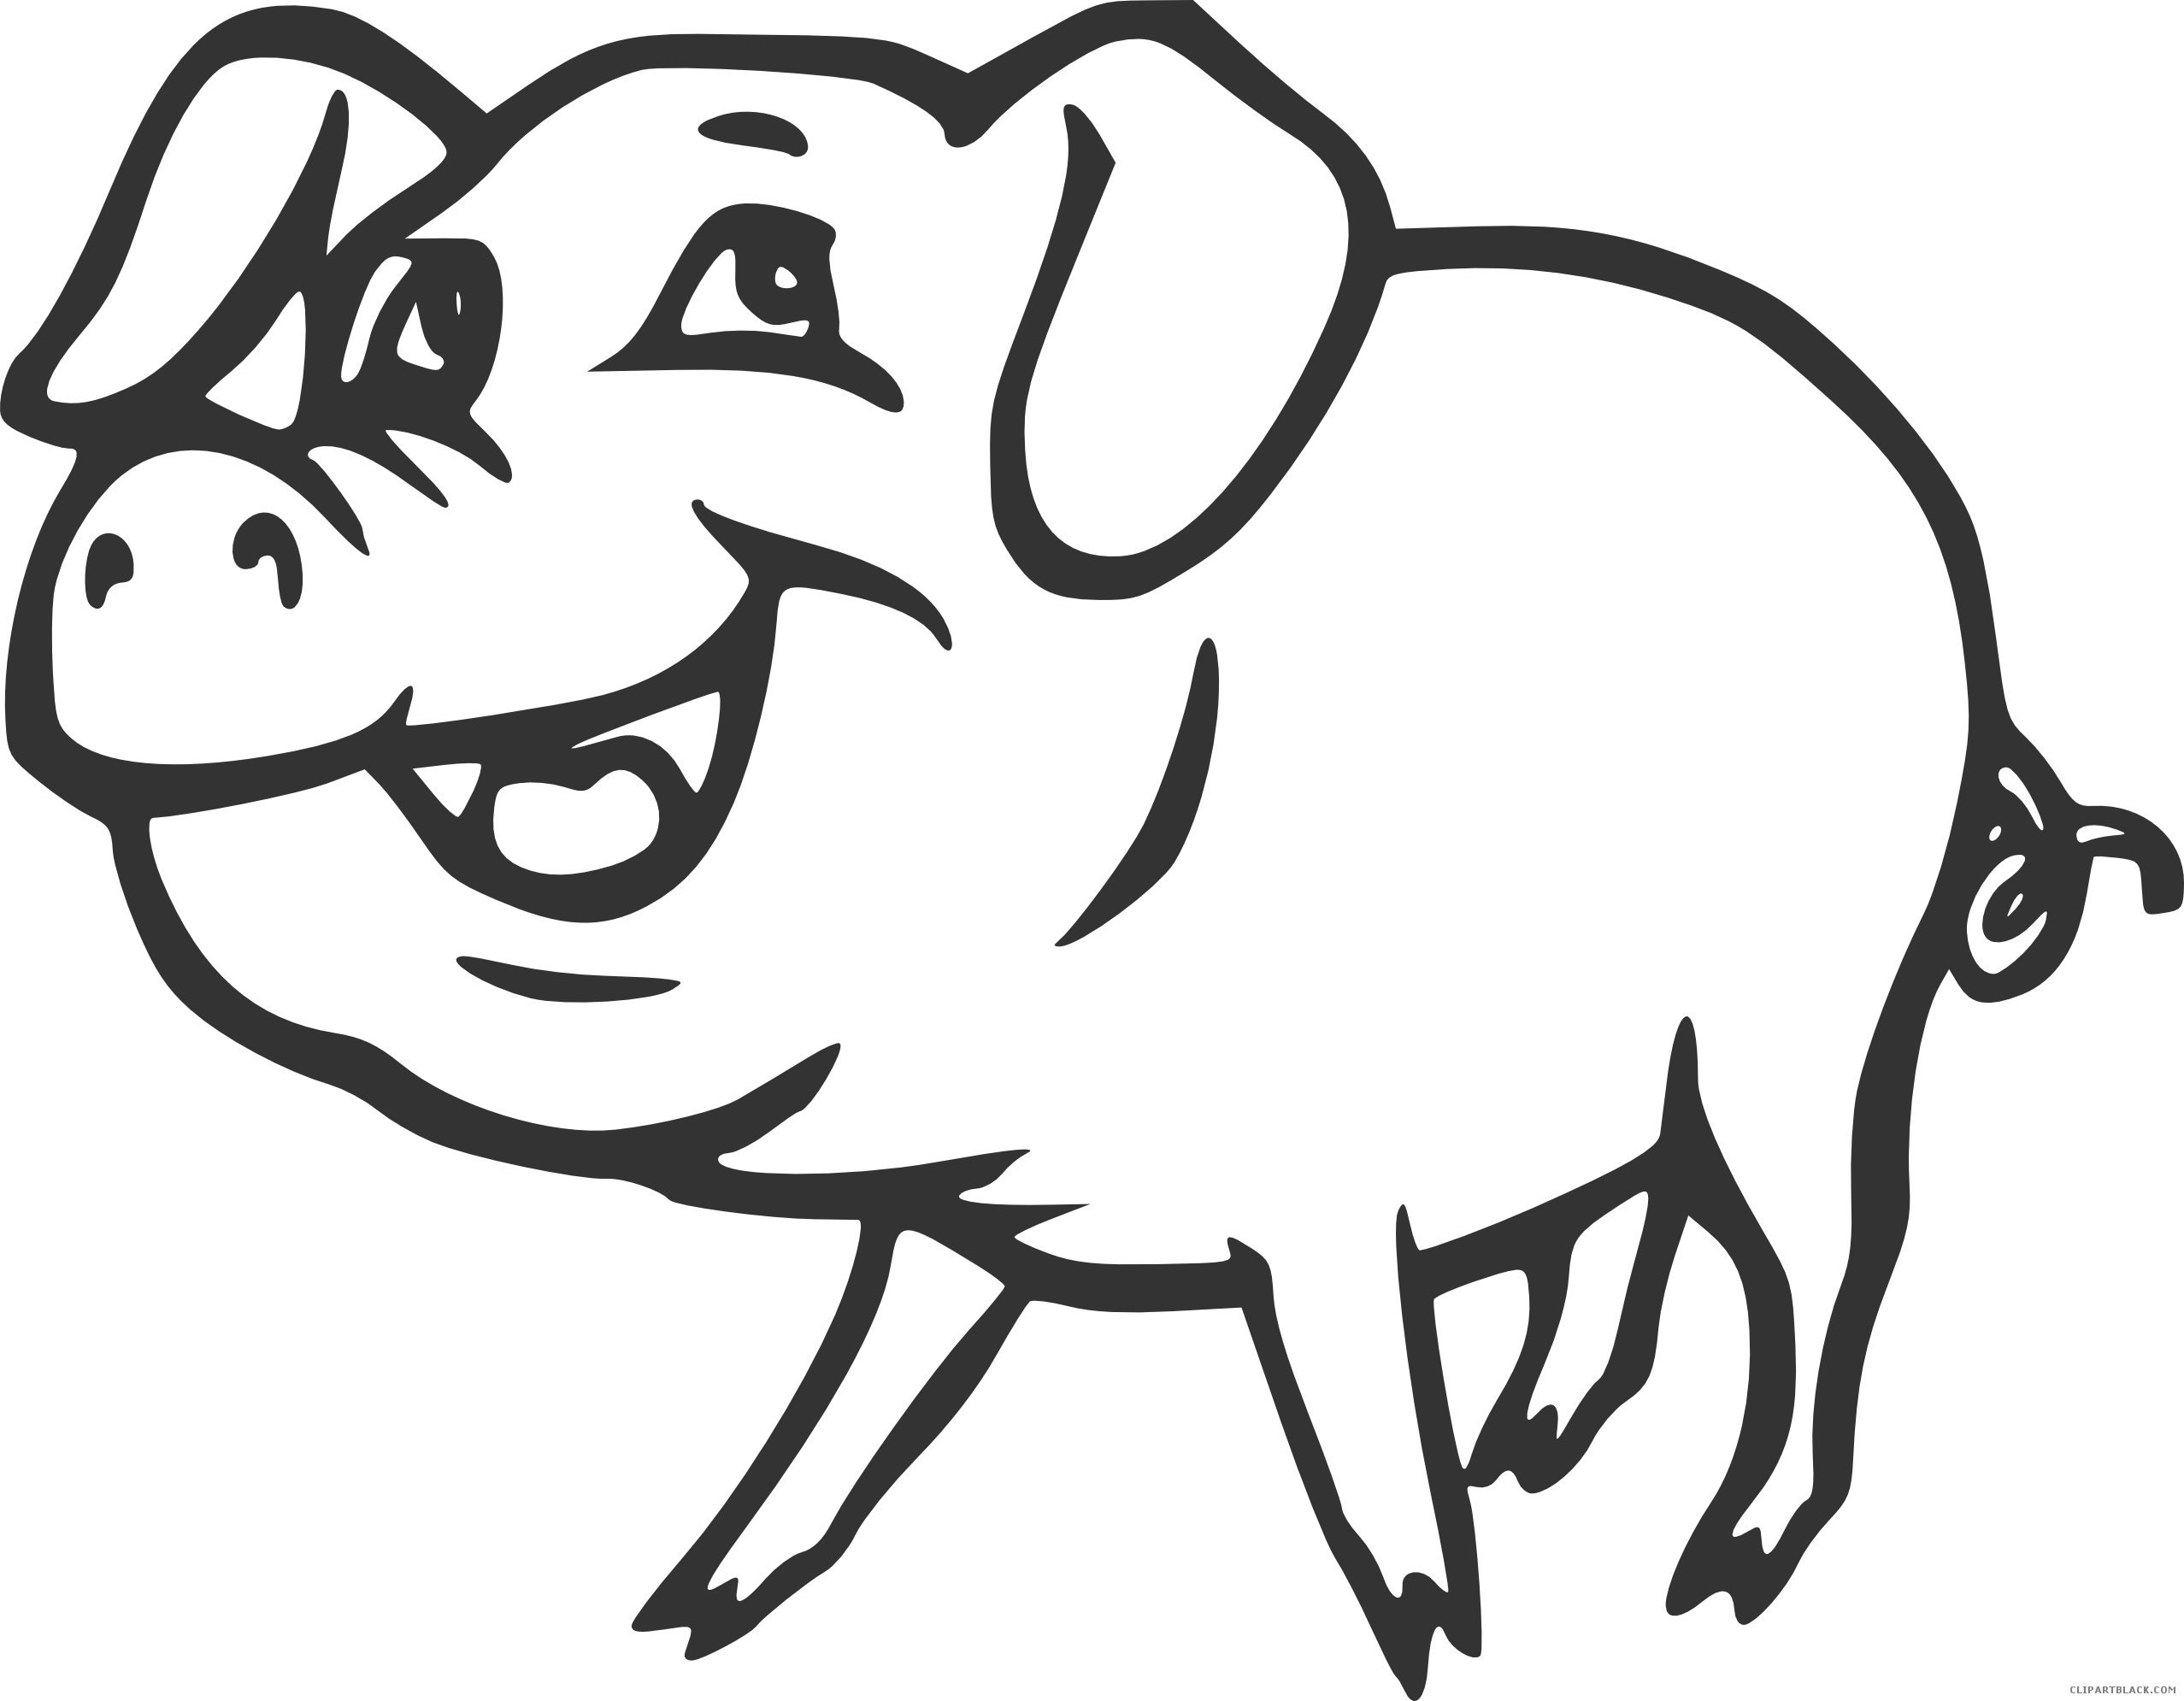 Pigs Clipart Food Pigs Food Transparent Free For Download